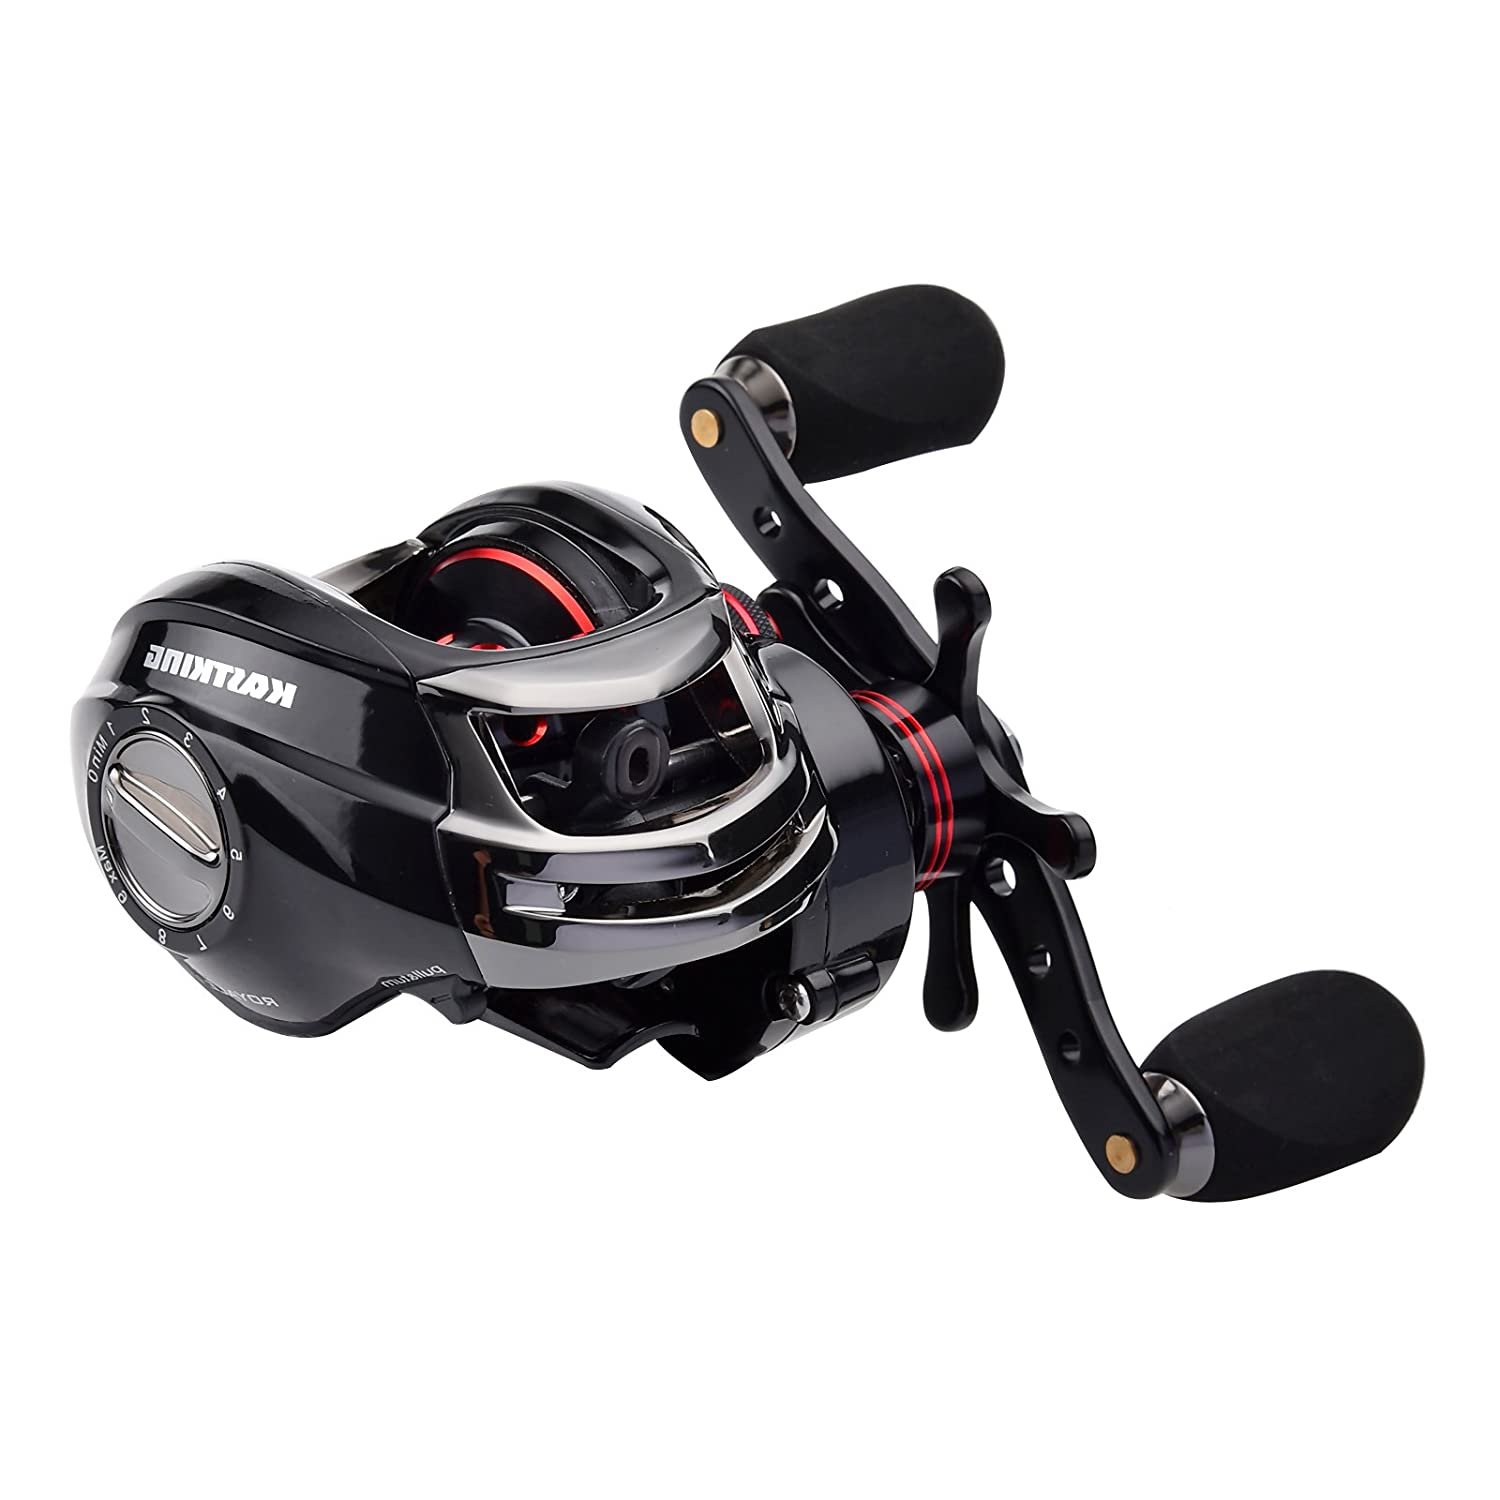 KastKing Royale Legend Baitcasting Fishing Reel – Perfect Baitcasting Reel – 11 + 1 Shielded Bearings – 17.5 Lb Carbon Fiber Drag - 7.0:1 Gear Ratio.